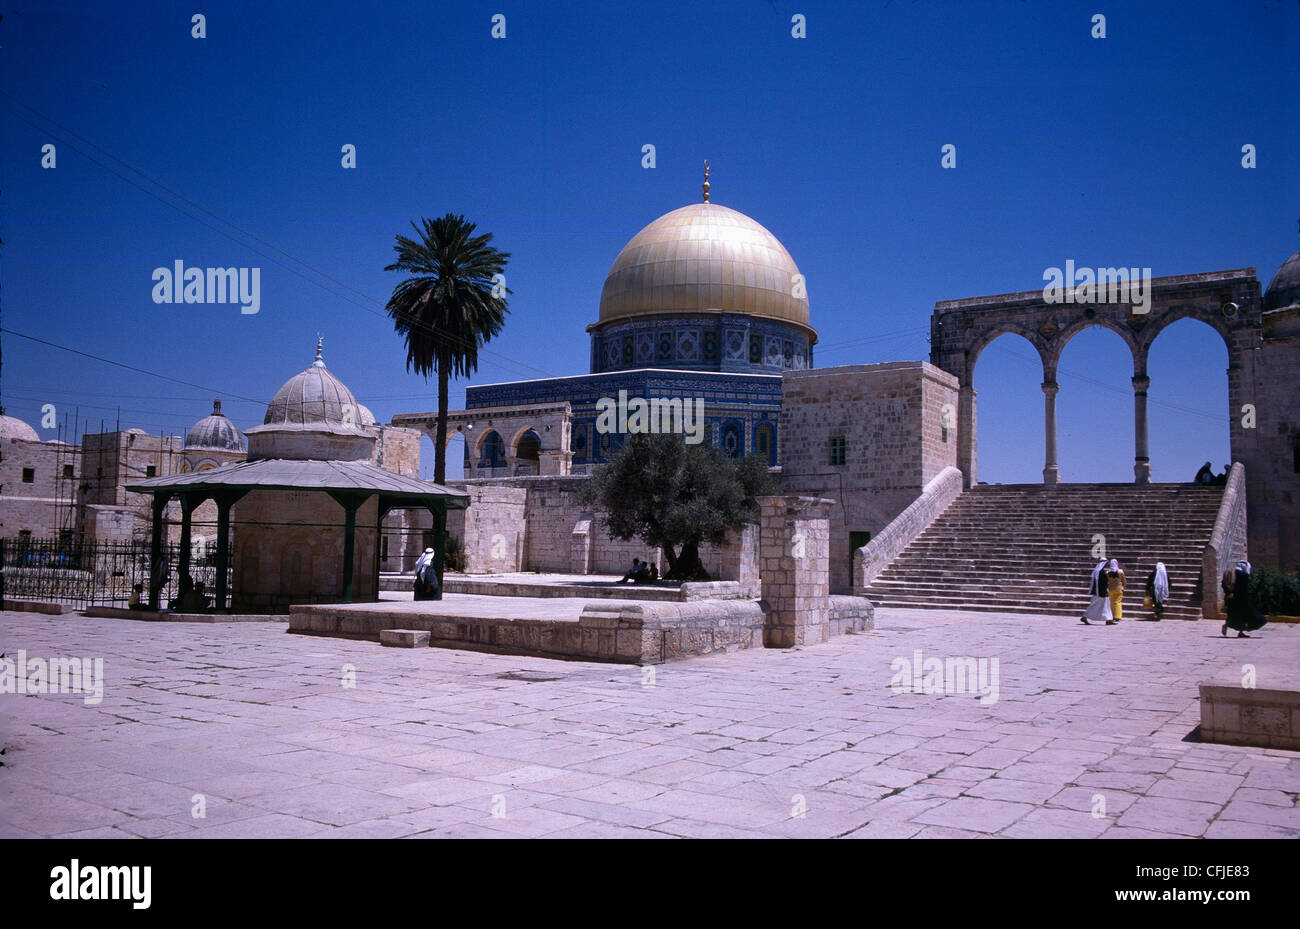 Dome of the Rock 'Al-Quds' Jerusalem - Stock Image